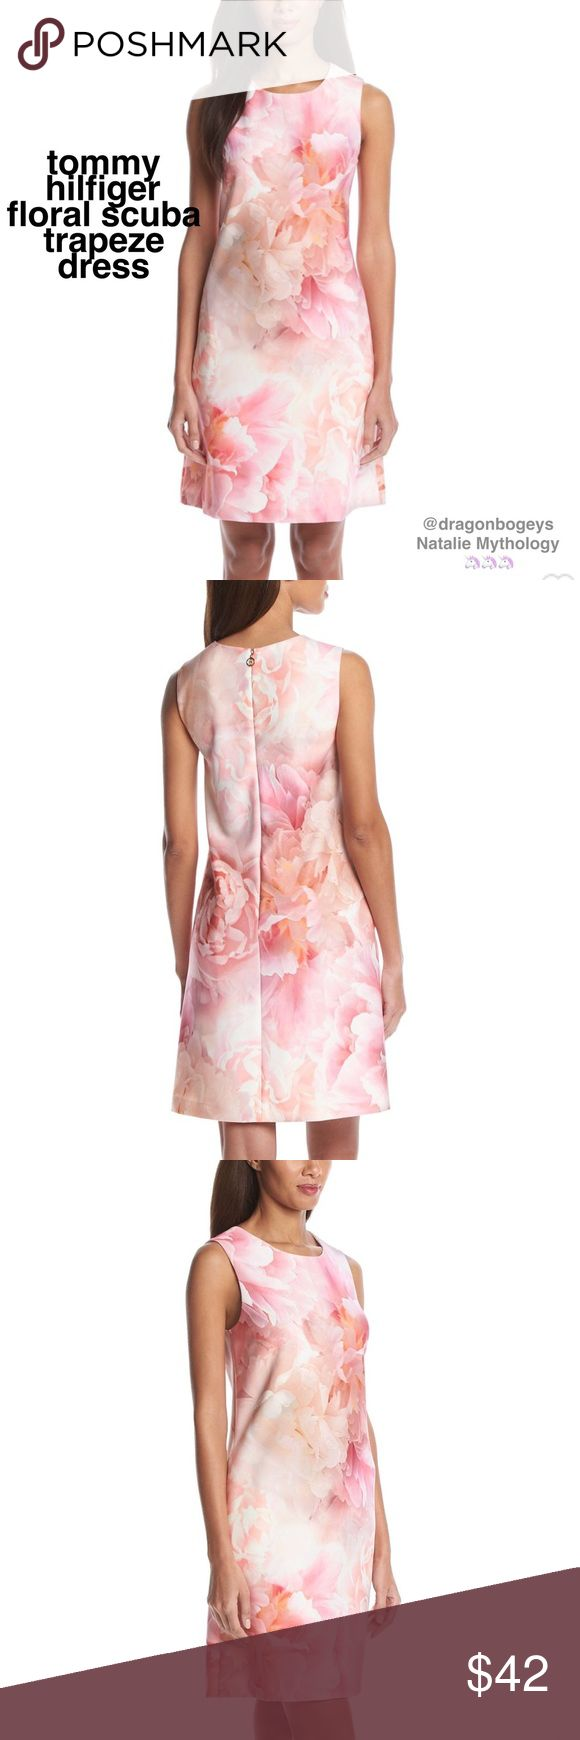 "Tommy Hilfiger Floral Scuba Trapeze Dress Brand new with tags sleeveless scuba printed pink floral dress with a crew neckline. Side pockets. Back zipper with hook and eye closure, zipper pull is gold Tommy Hilfiger circular logo. Fully lined. Outer fabric is 95% polyester and 5% spandex. Lining is 100% polyester. Length is 38.5"", bust is 20"" laid flat, waist is 19.5"" laid flat. Material does provide some stretch. Never worn, tried on once. Brand new with tags. Tommy Hilfiger Dresses"